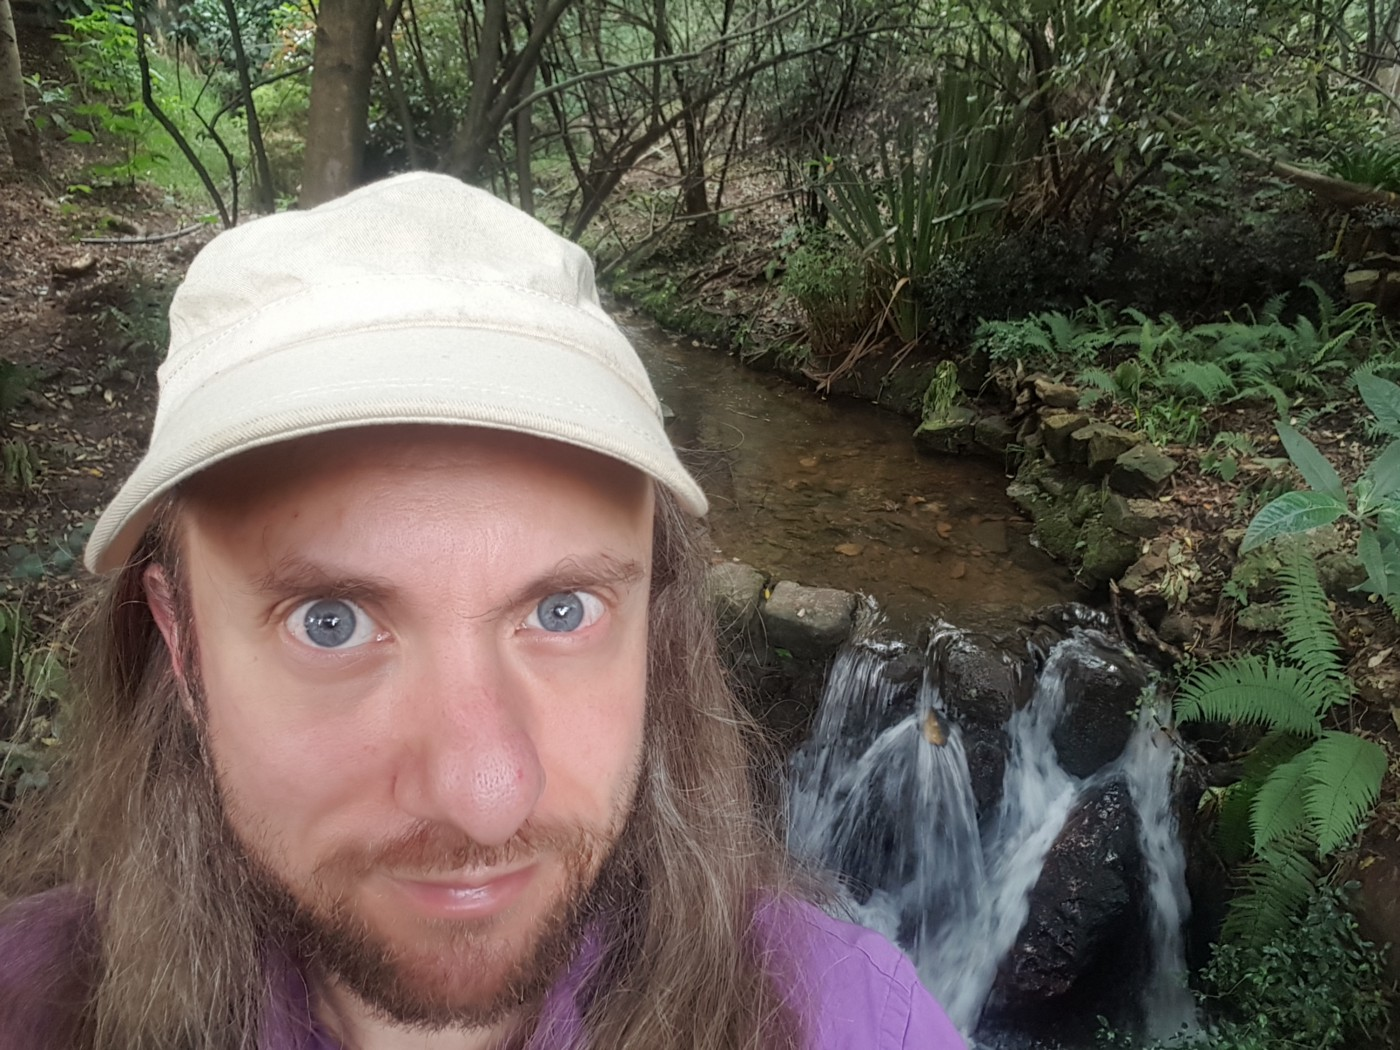 Tucker Lieberman standing by a small waterfall at Quebrada la Vieja in Bogotá, Colombia. 5 December 2020